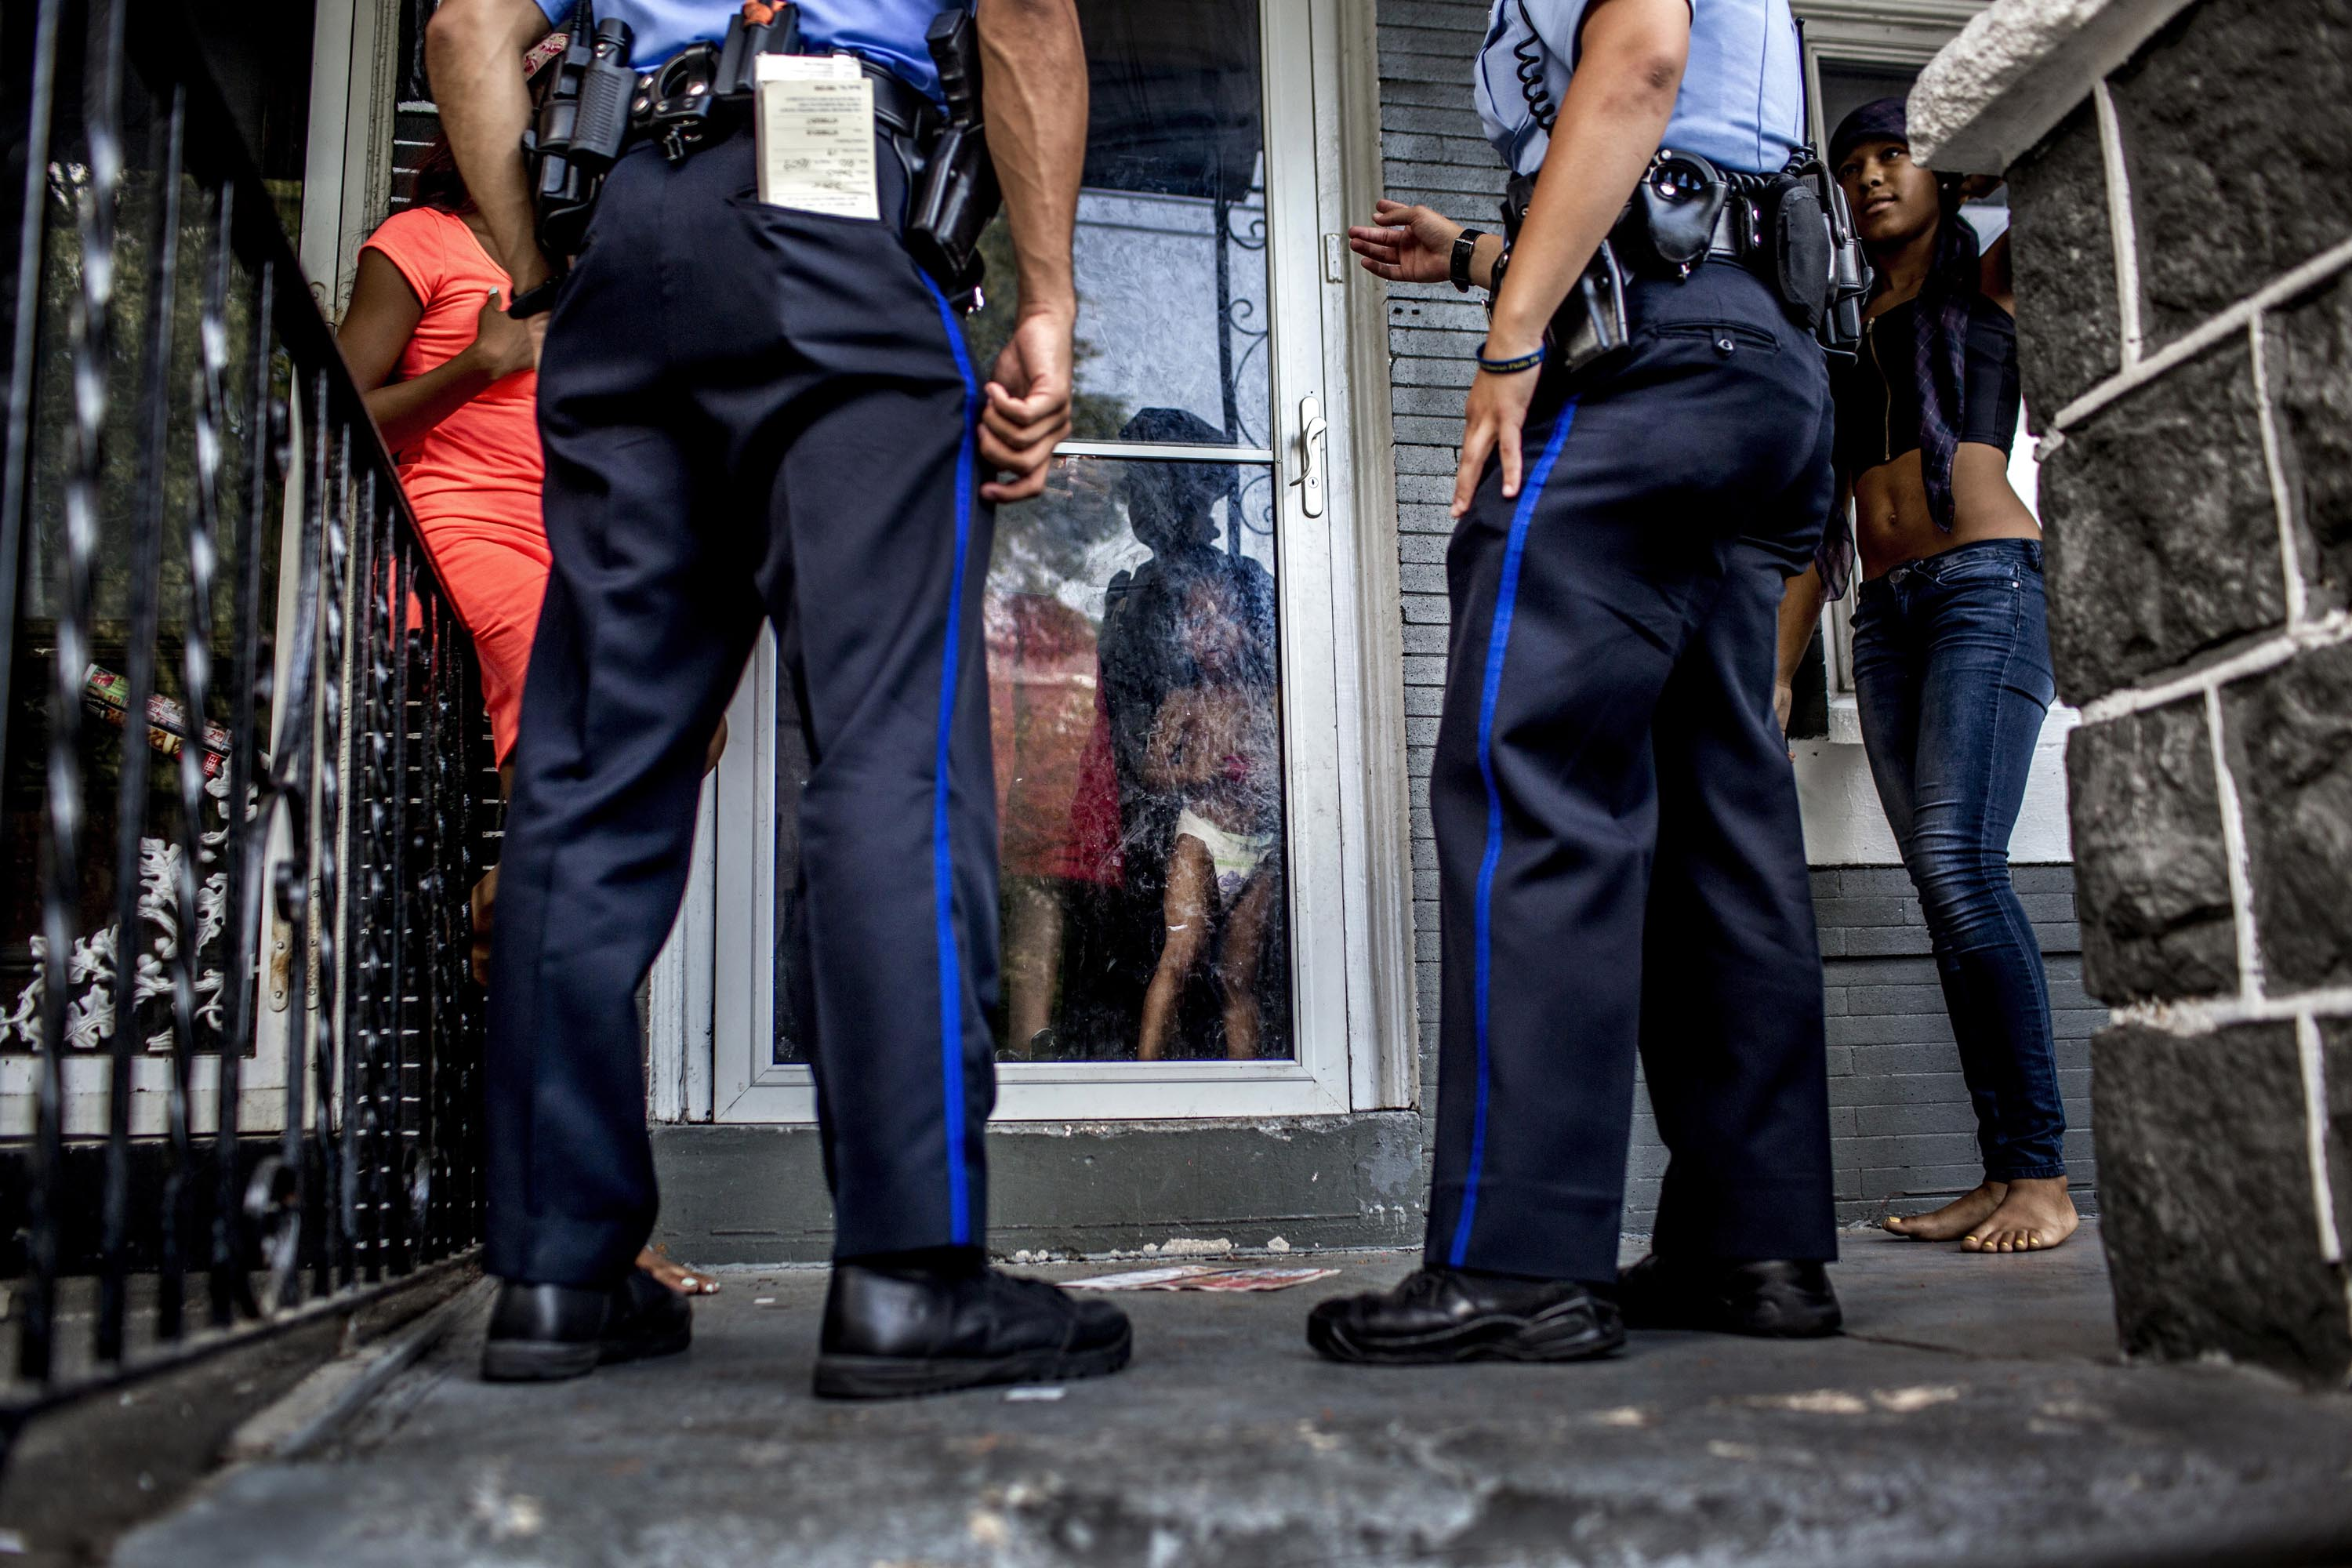 Police officers respond to a young woman who said she was threatened by an ex-boyfriend on July 28 in Philadelphia's 19th District